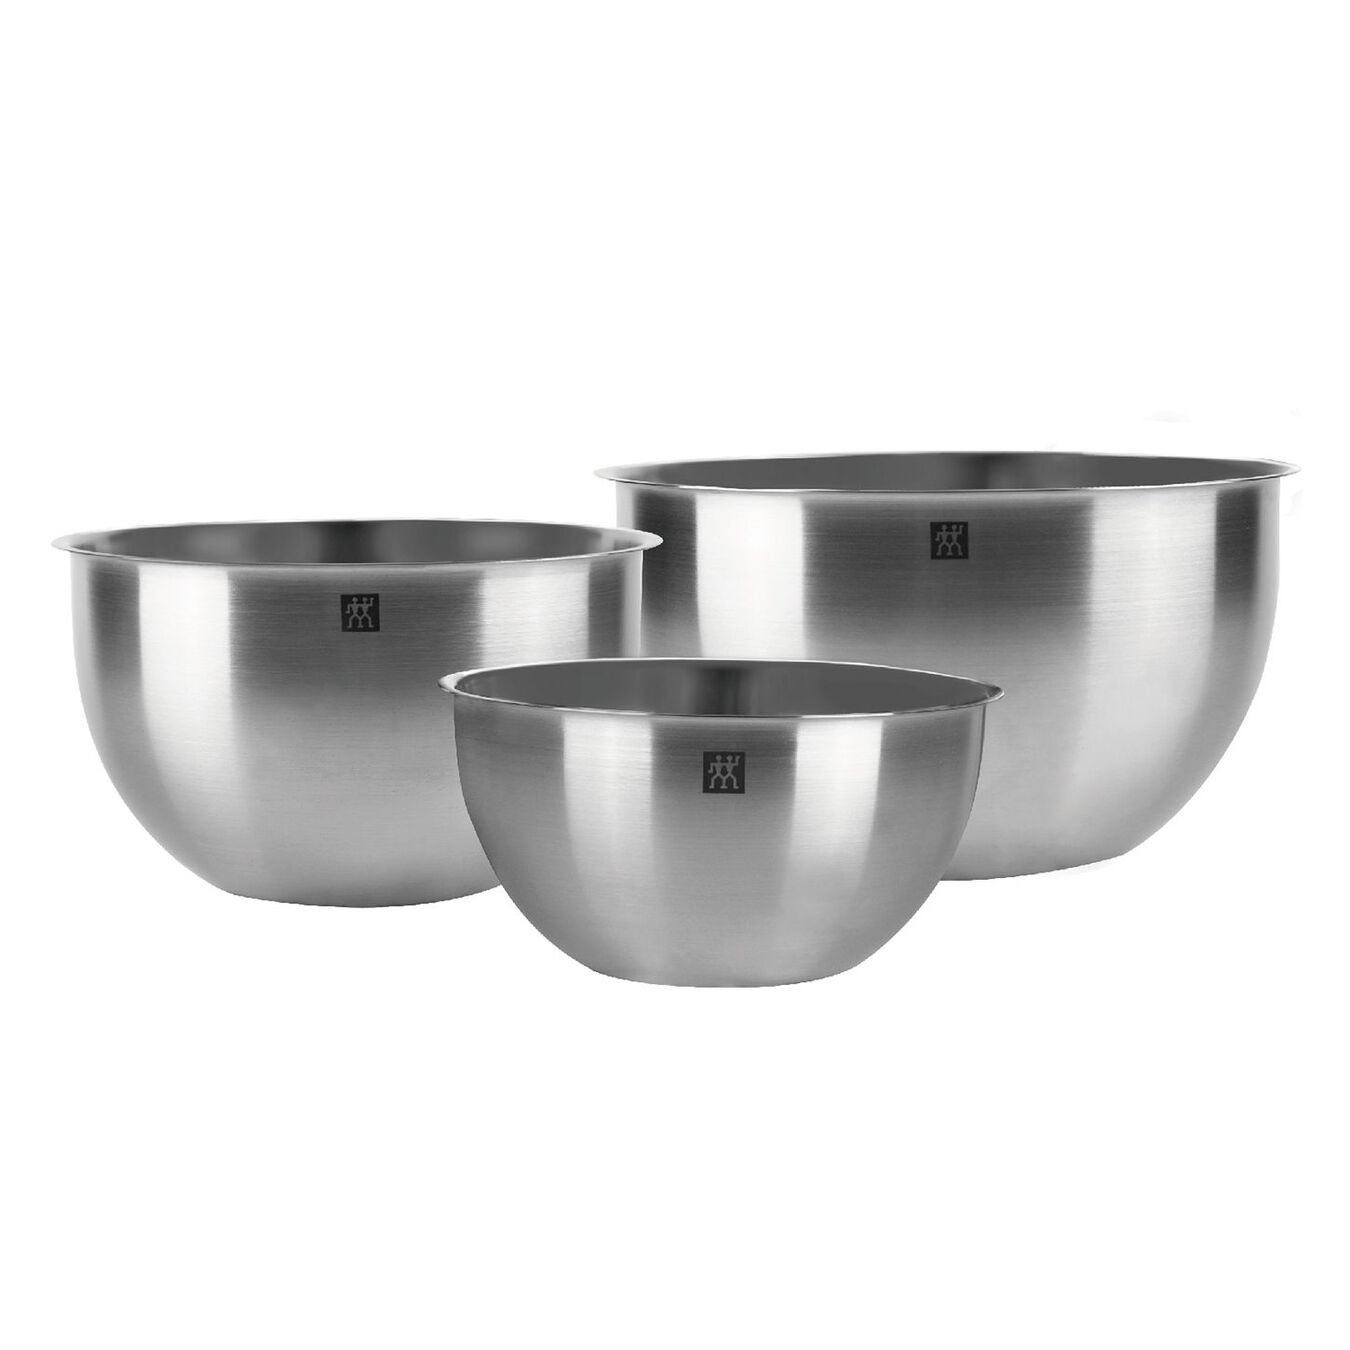 3 PIECE 18/10 STAINLESS STEEL MIXING BOWL SET,,large 1